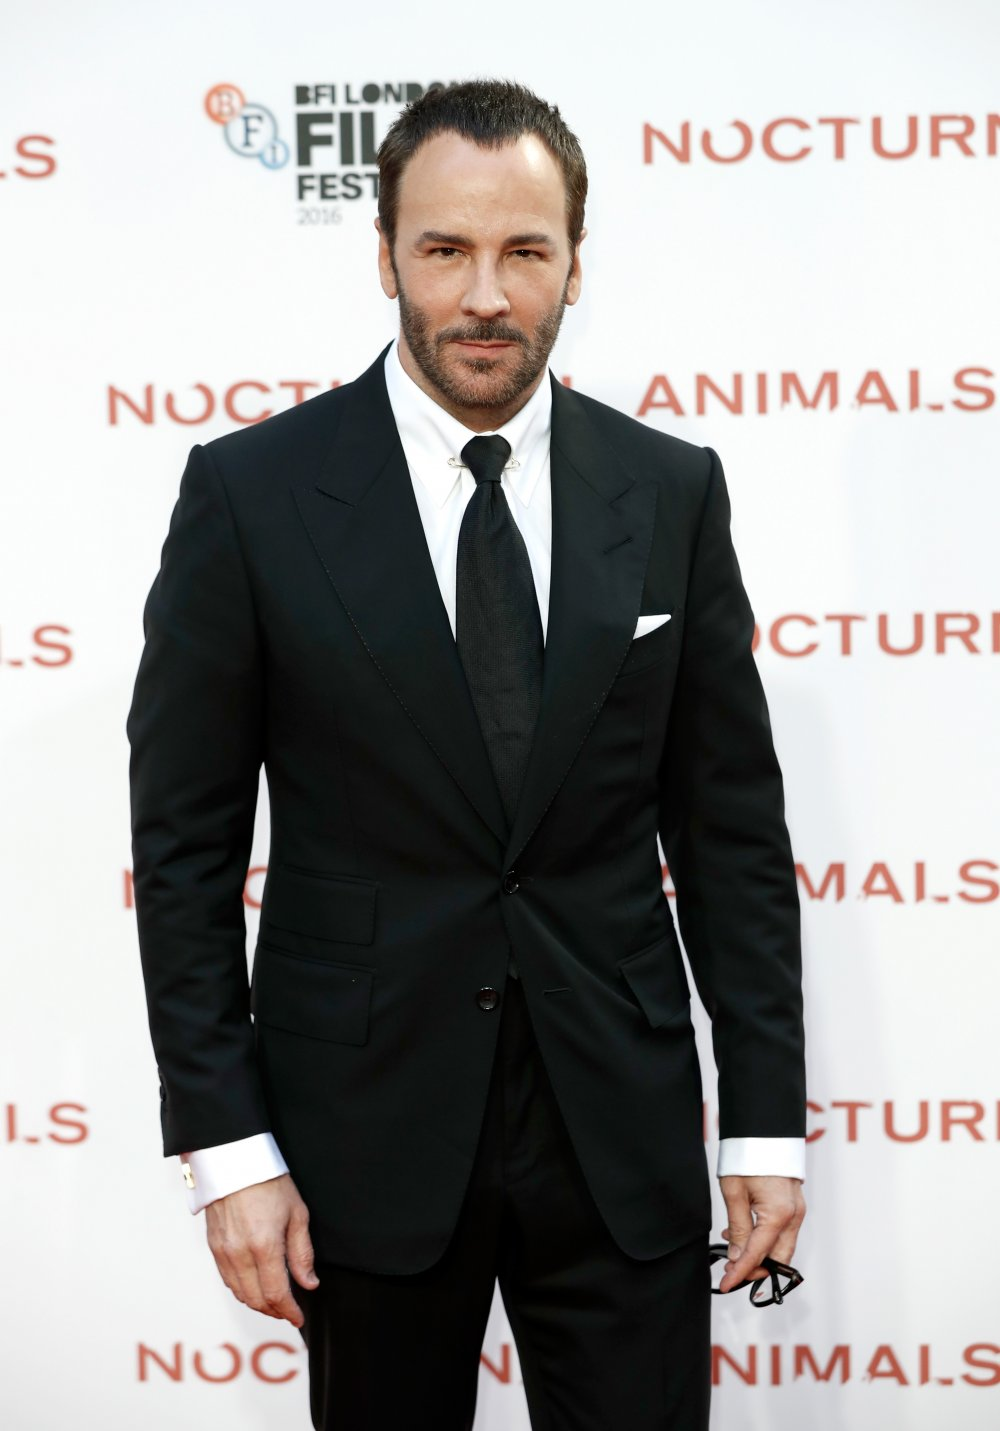 9a766308fa2 Tom Ford attends the Nocturnal Animals Headline Gala during the 60th BFI  London Film Festival